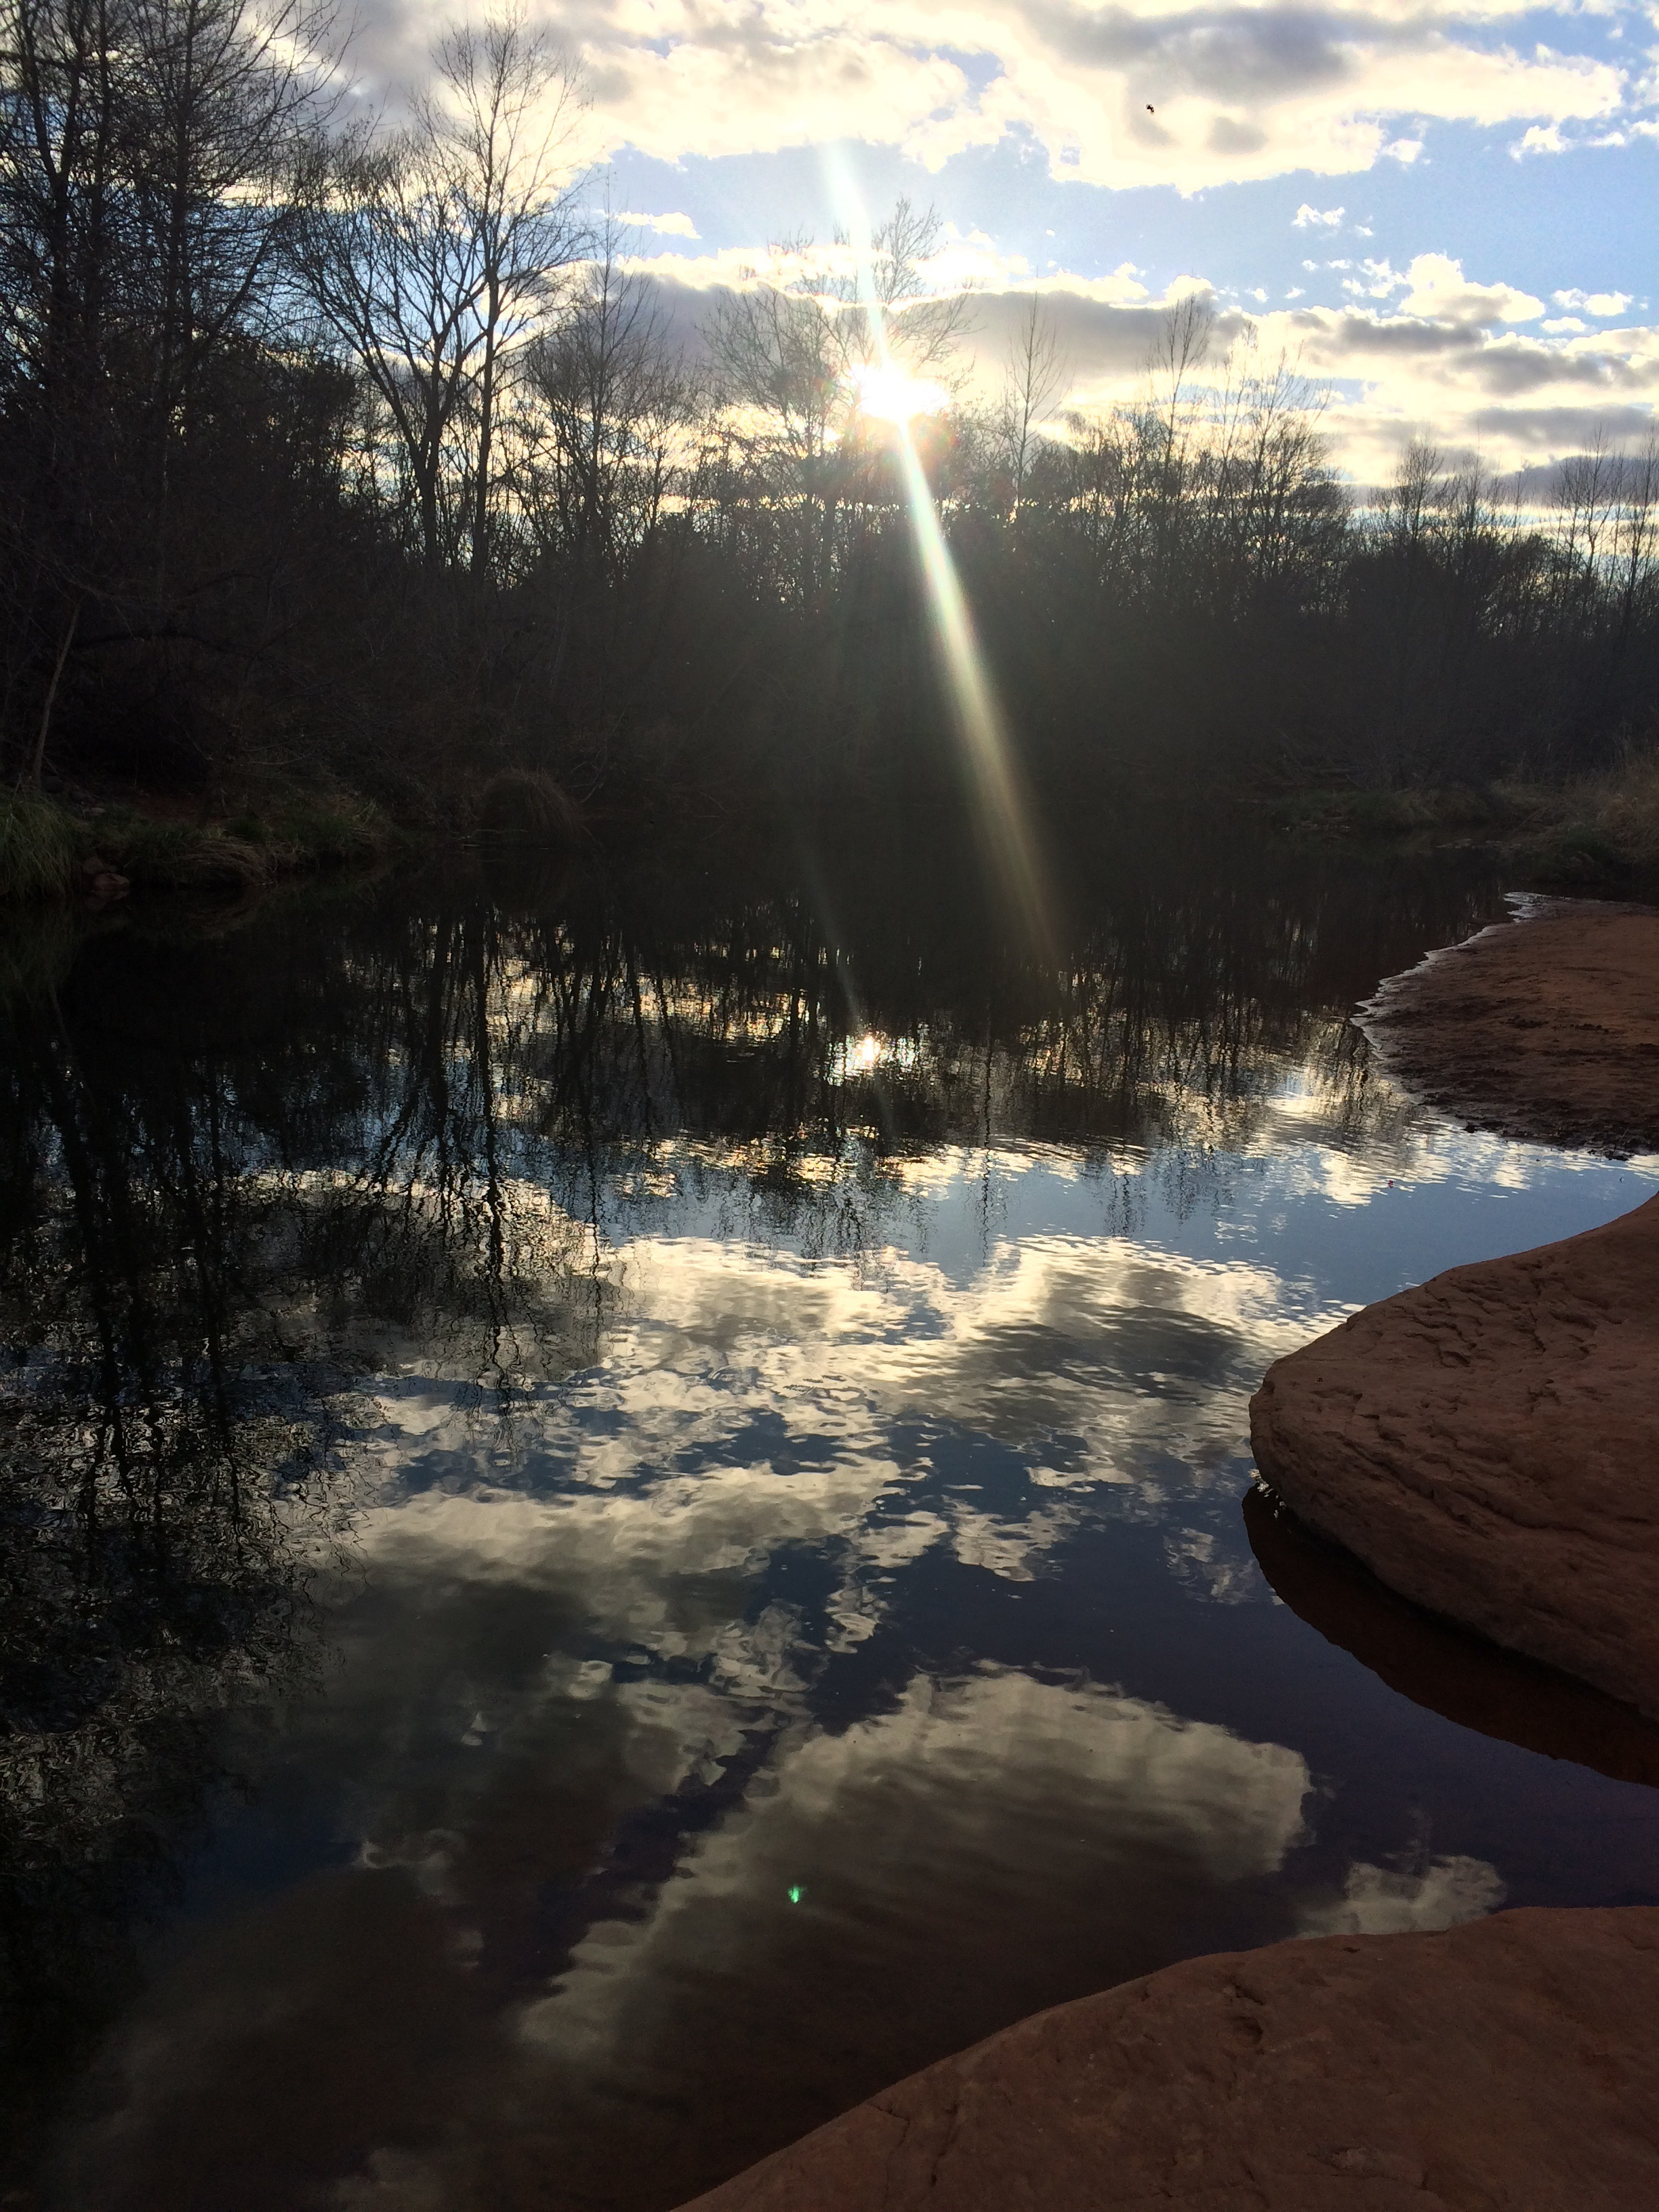 Reflection at Cathedral Rock in Sedona, AZ.